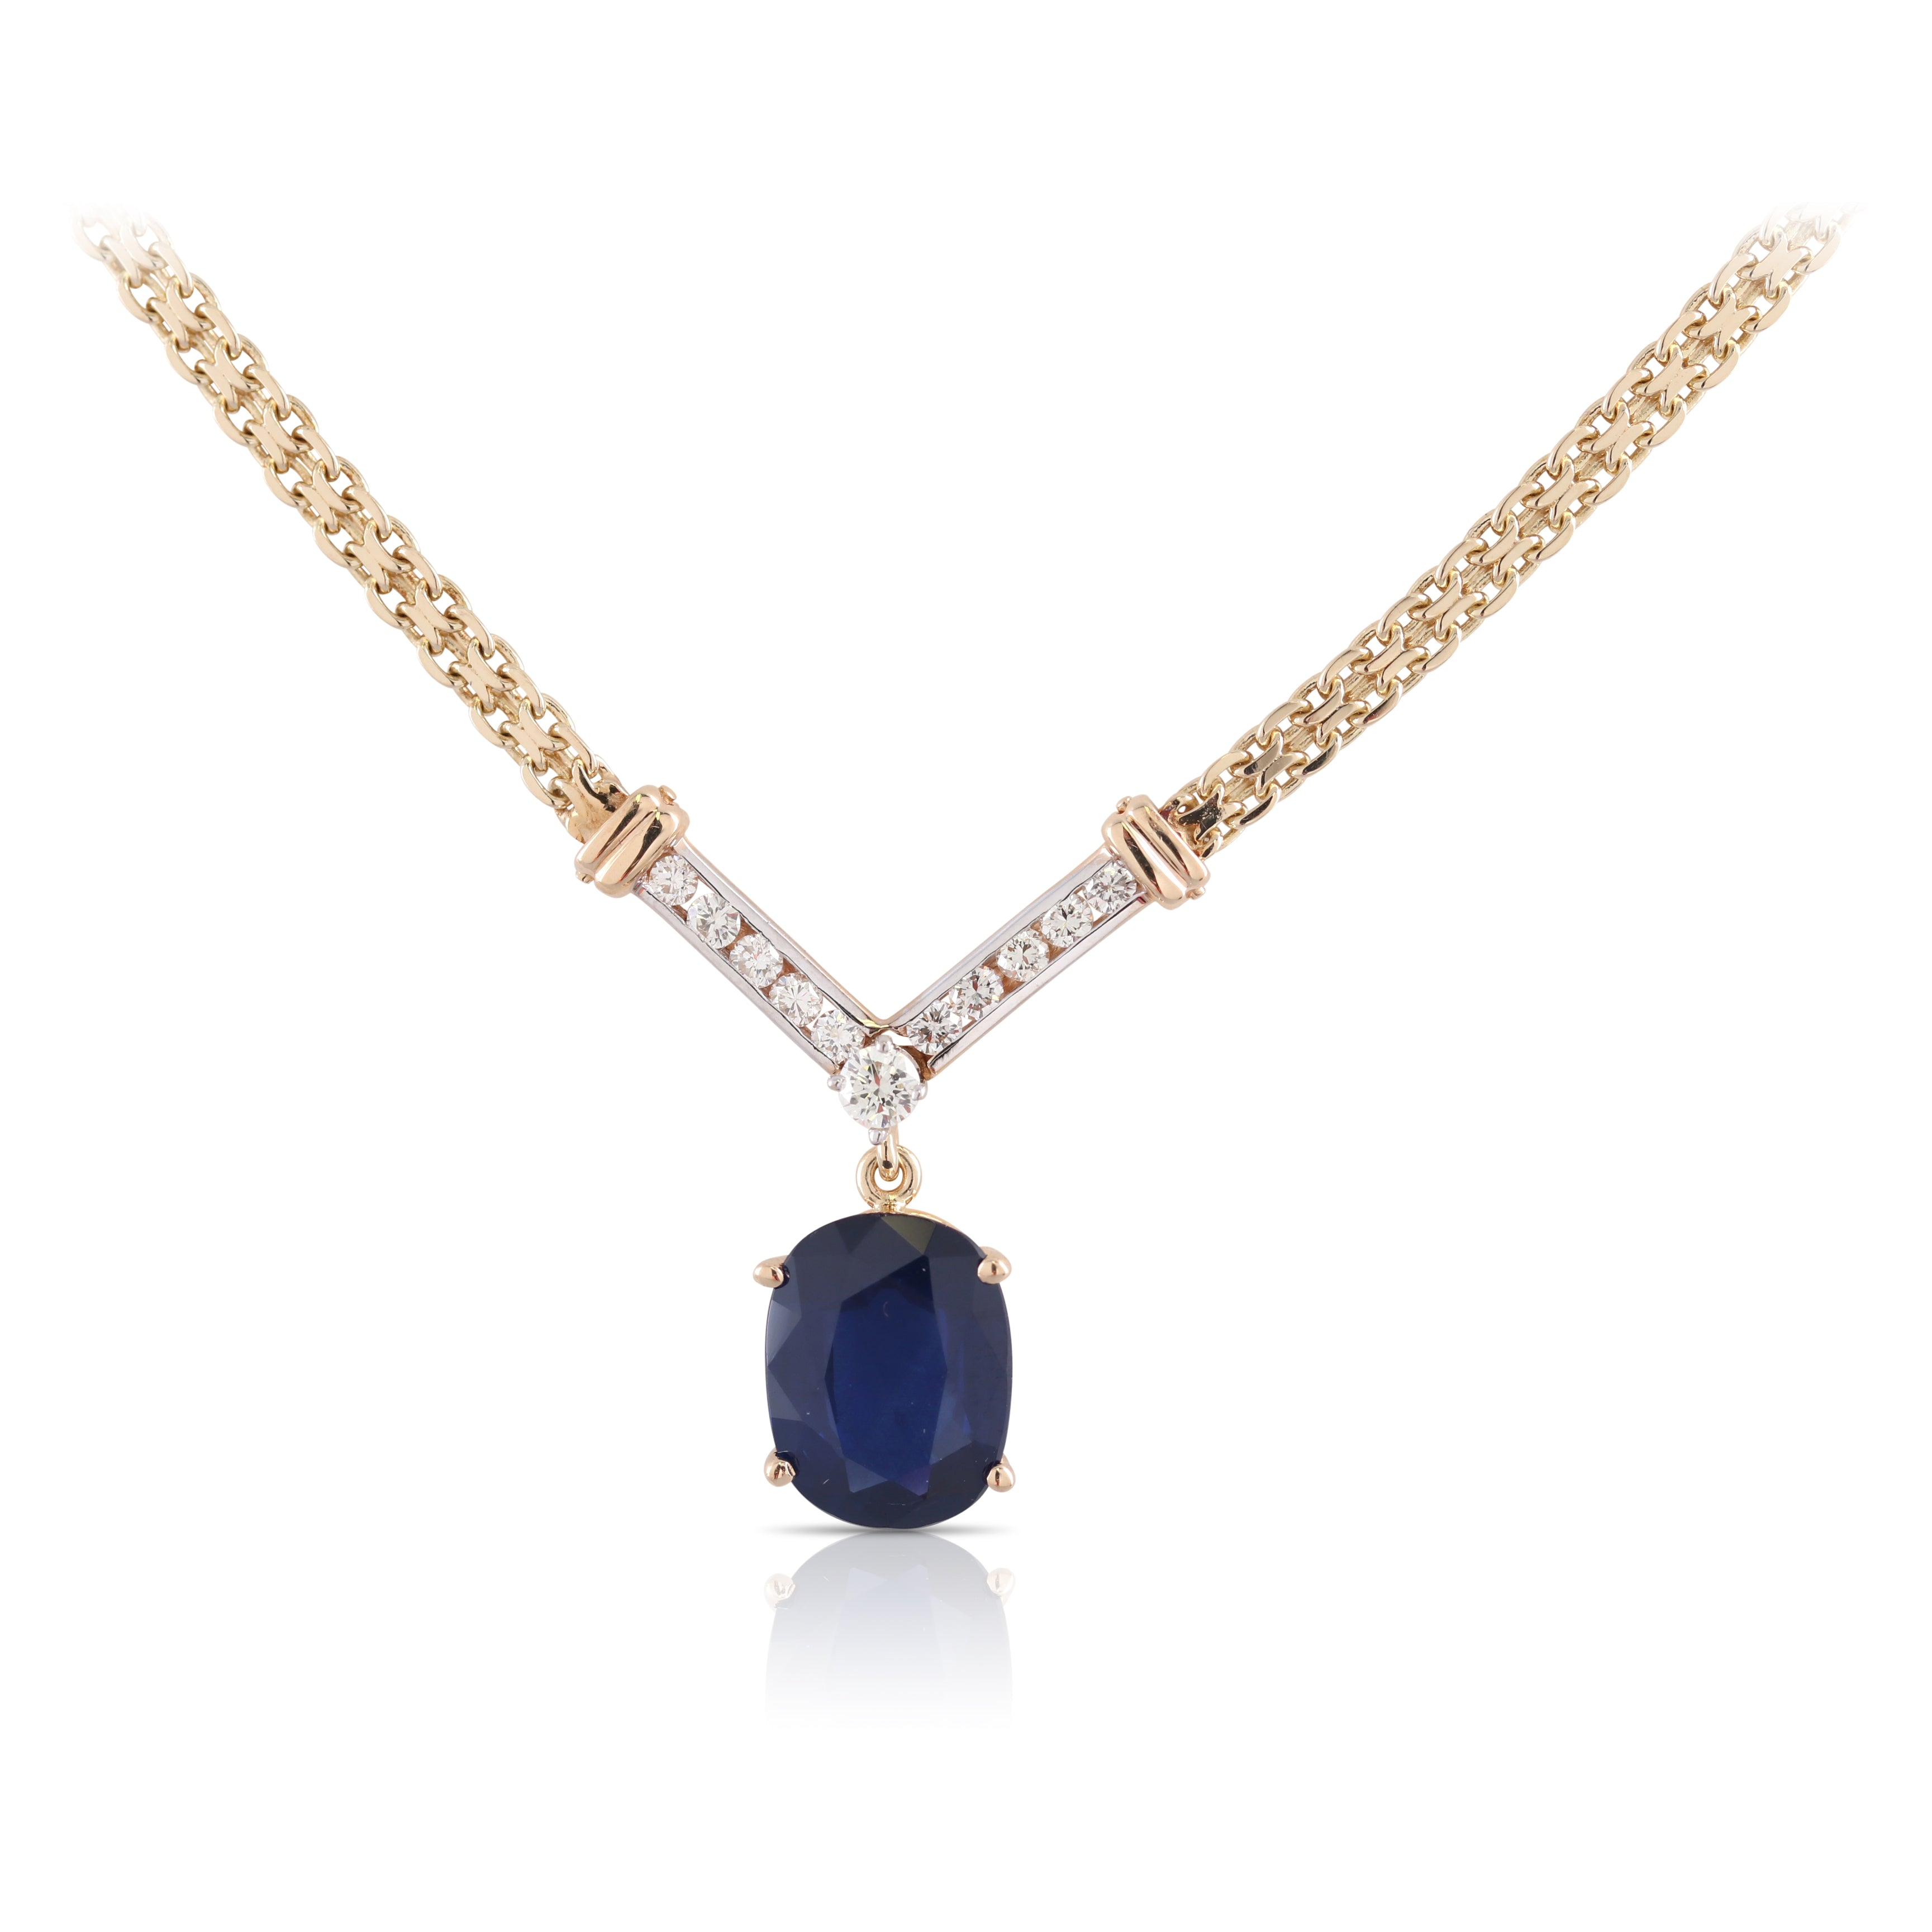 Sapphire and Diamond Pendant Necklace | The Ingrid